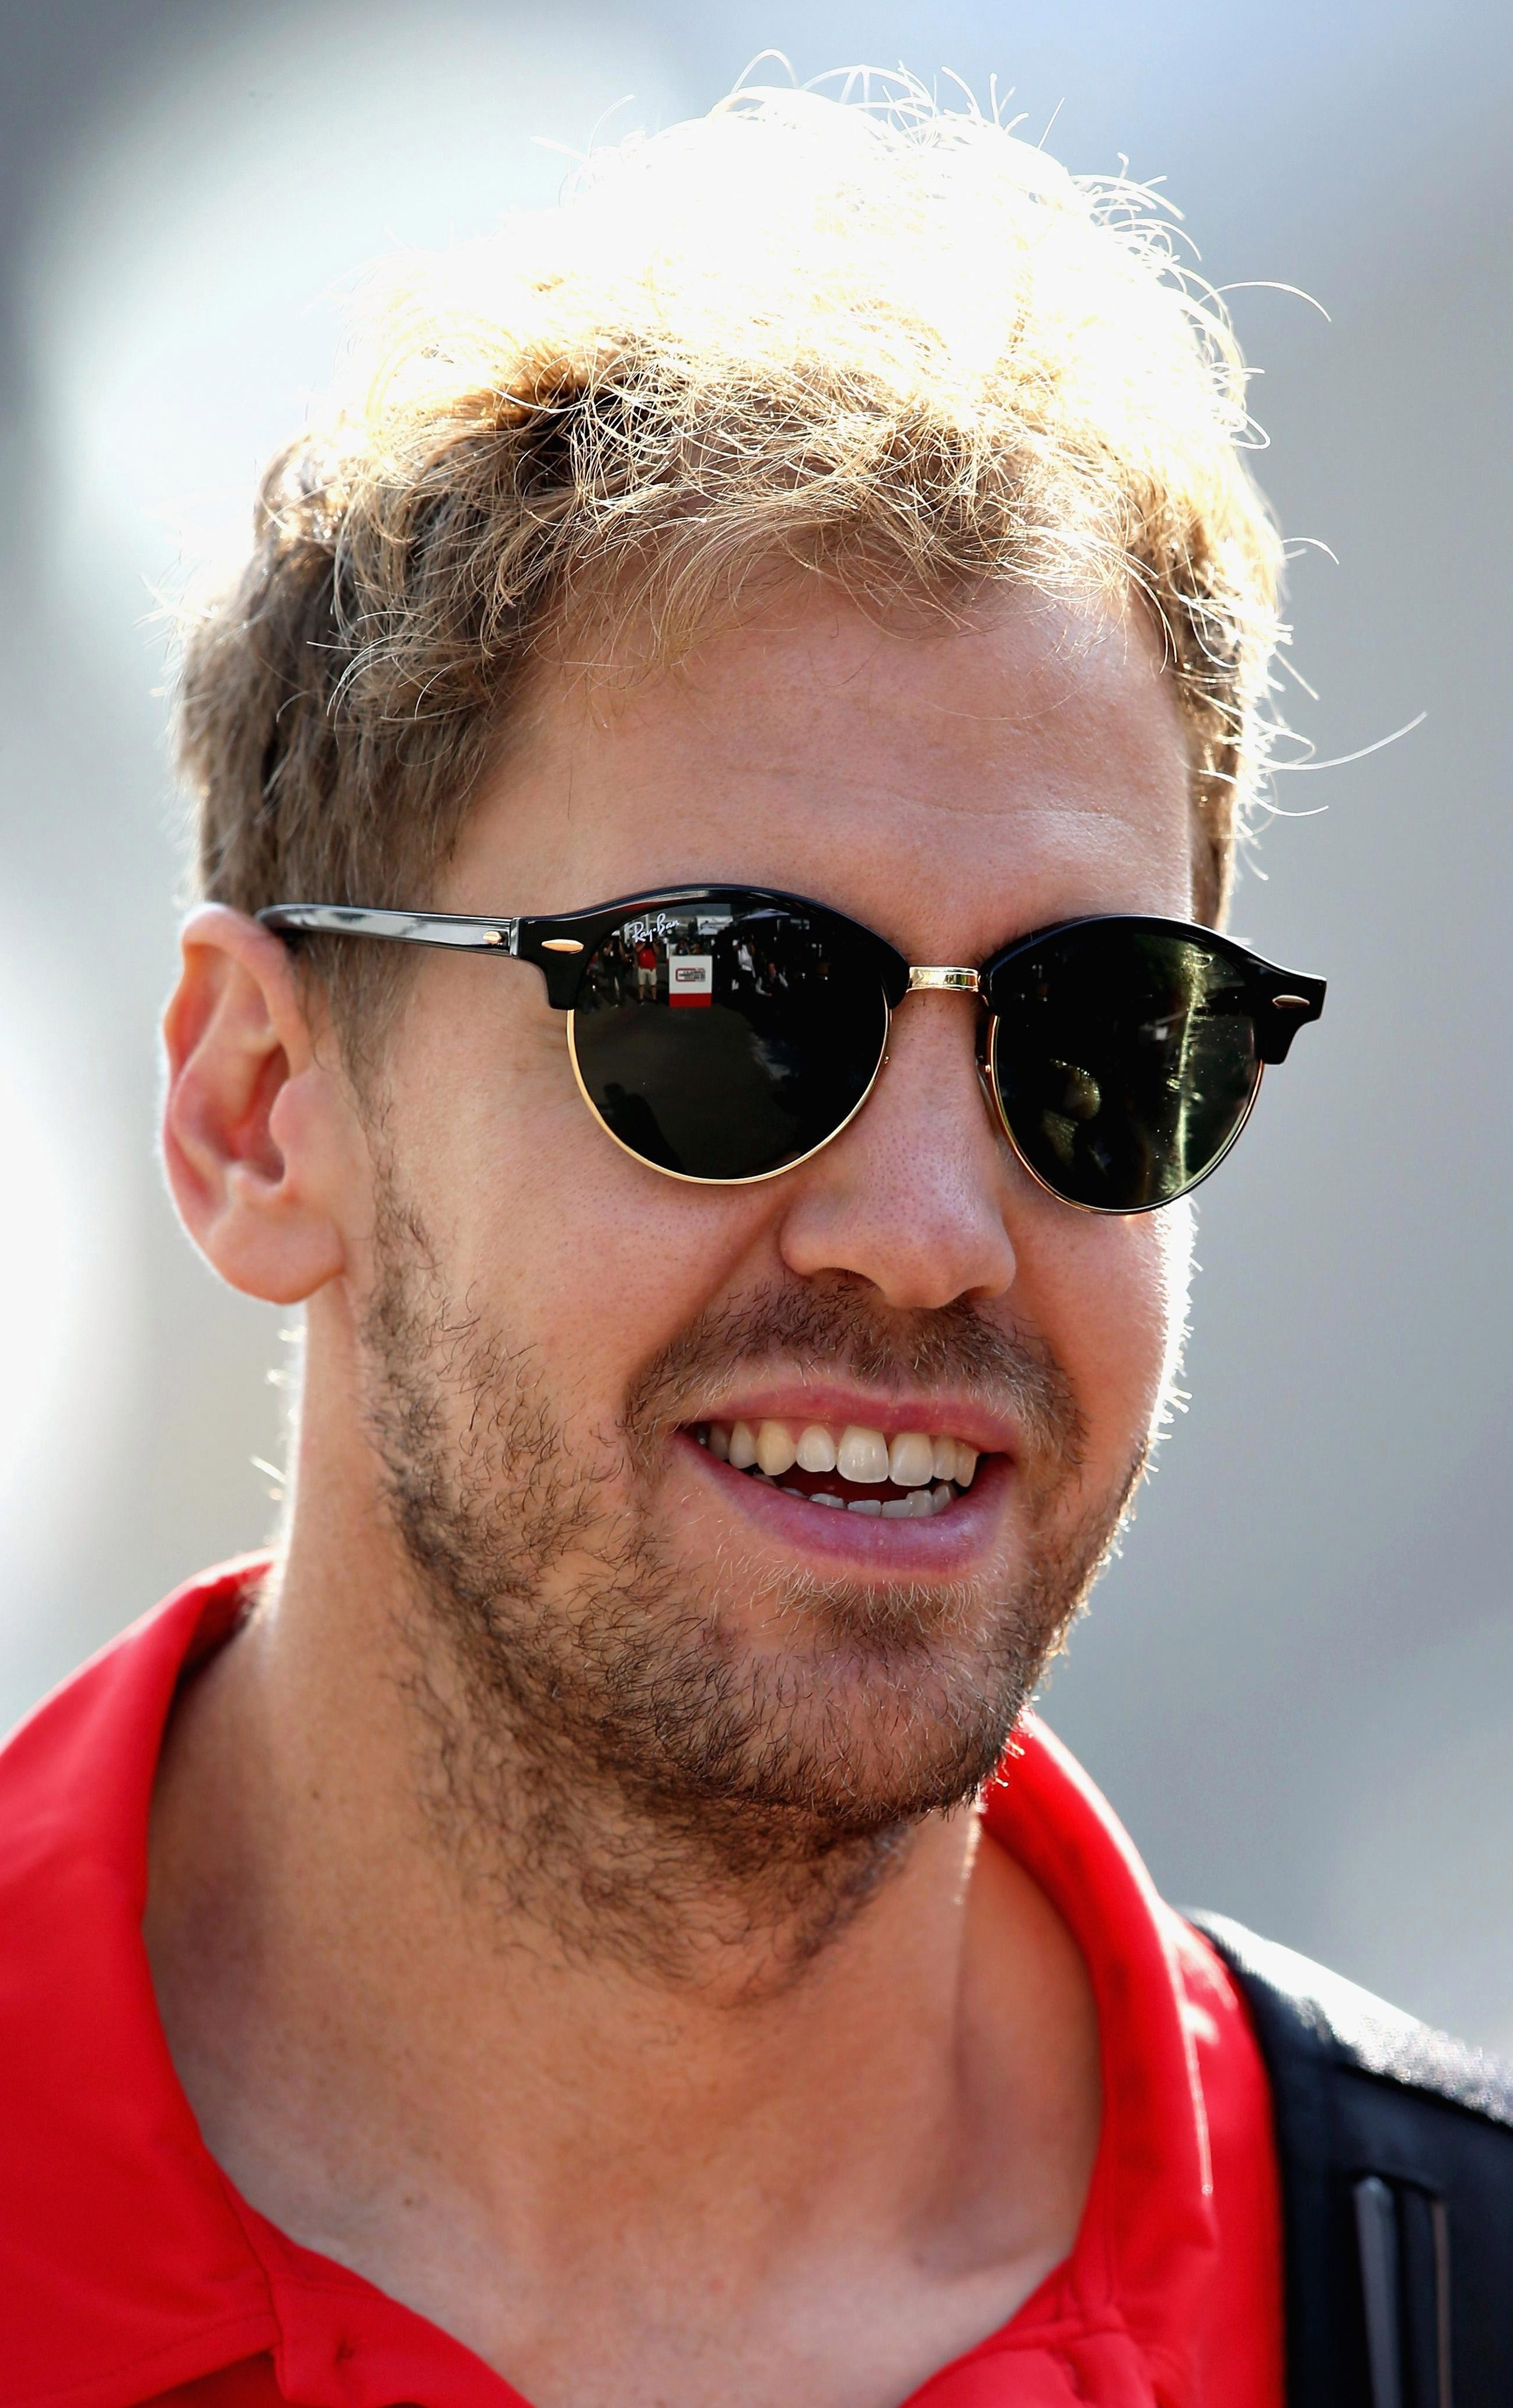 Sebastian Vettel has made a number of high-profile errors this season that have put paid to his title aspirations